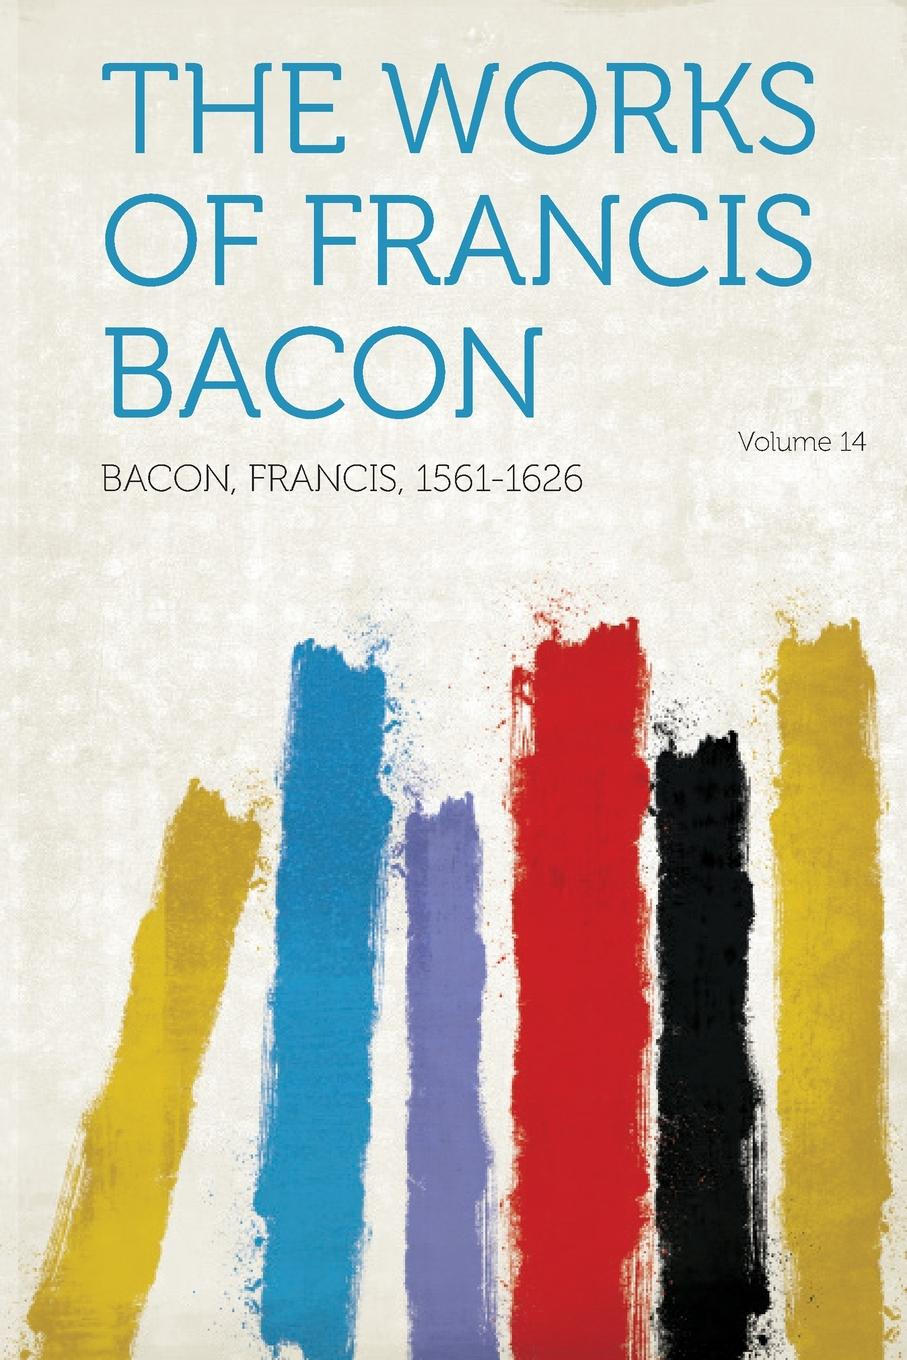 Francis Bacon The Works of Francis Bacon Volume 14 фрэнсис бэкон the works of francis bacon volume 11